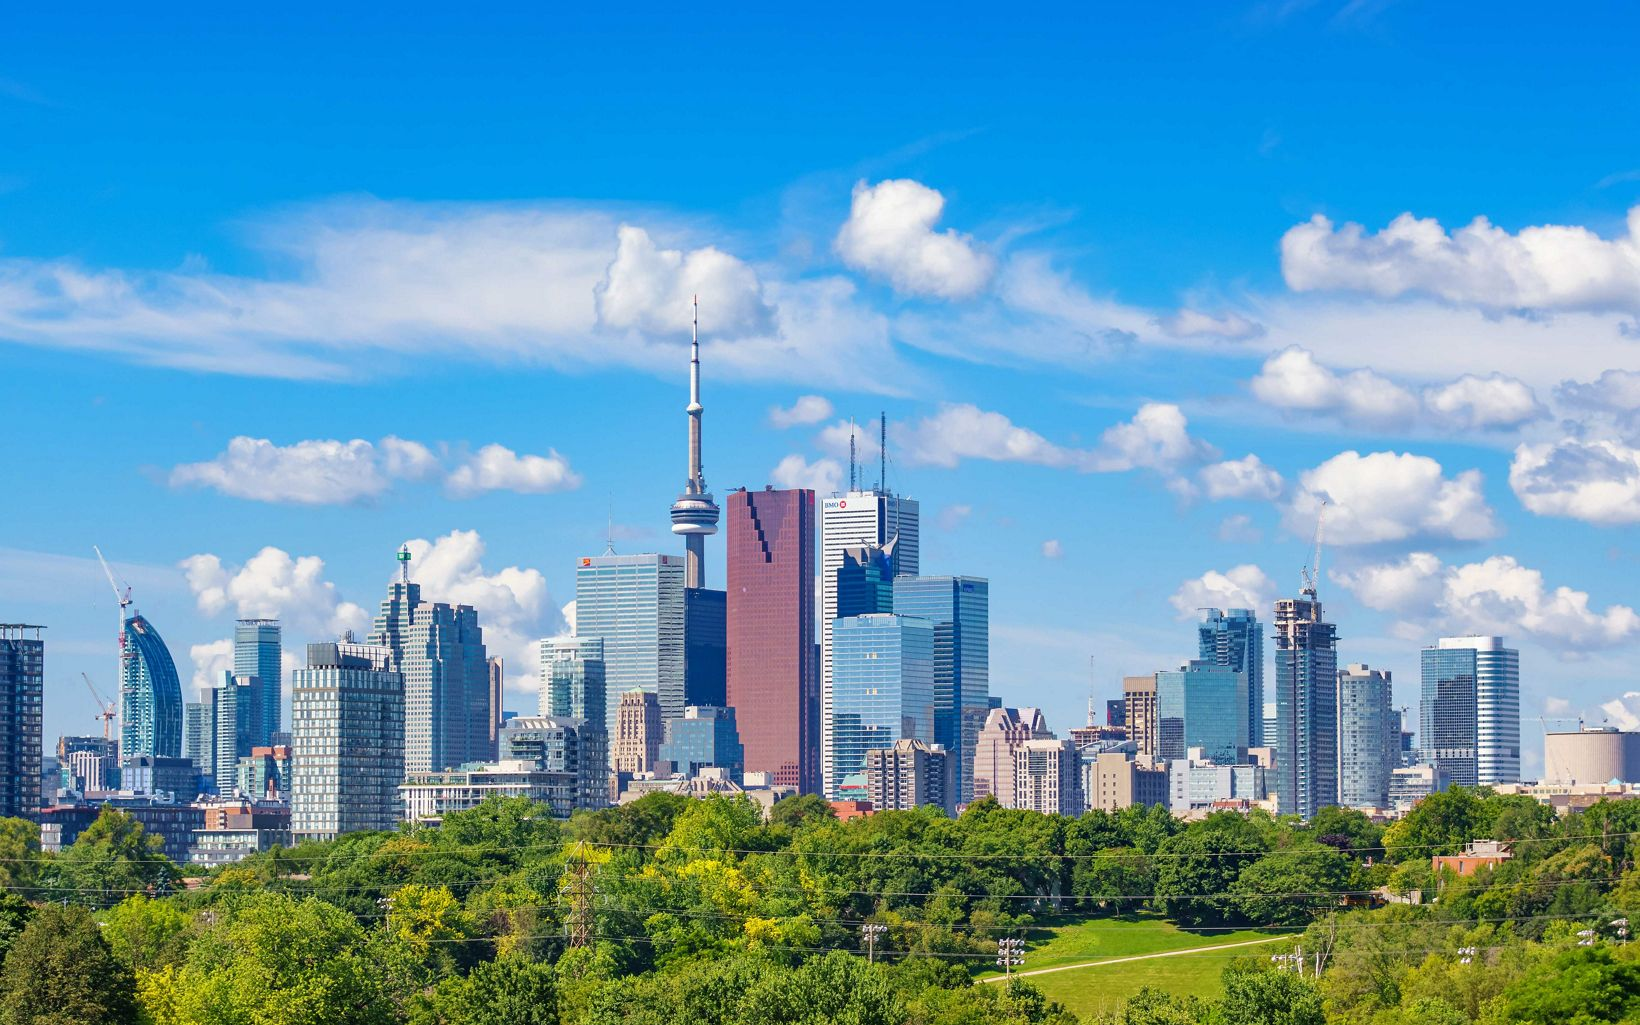 Photo of the skyline of downtown Toronto Ontario Canada on a sunny day.